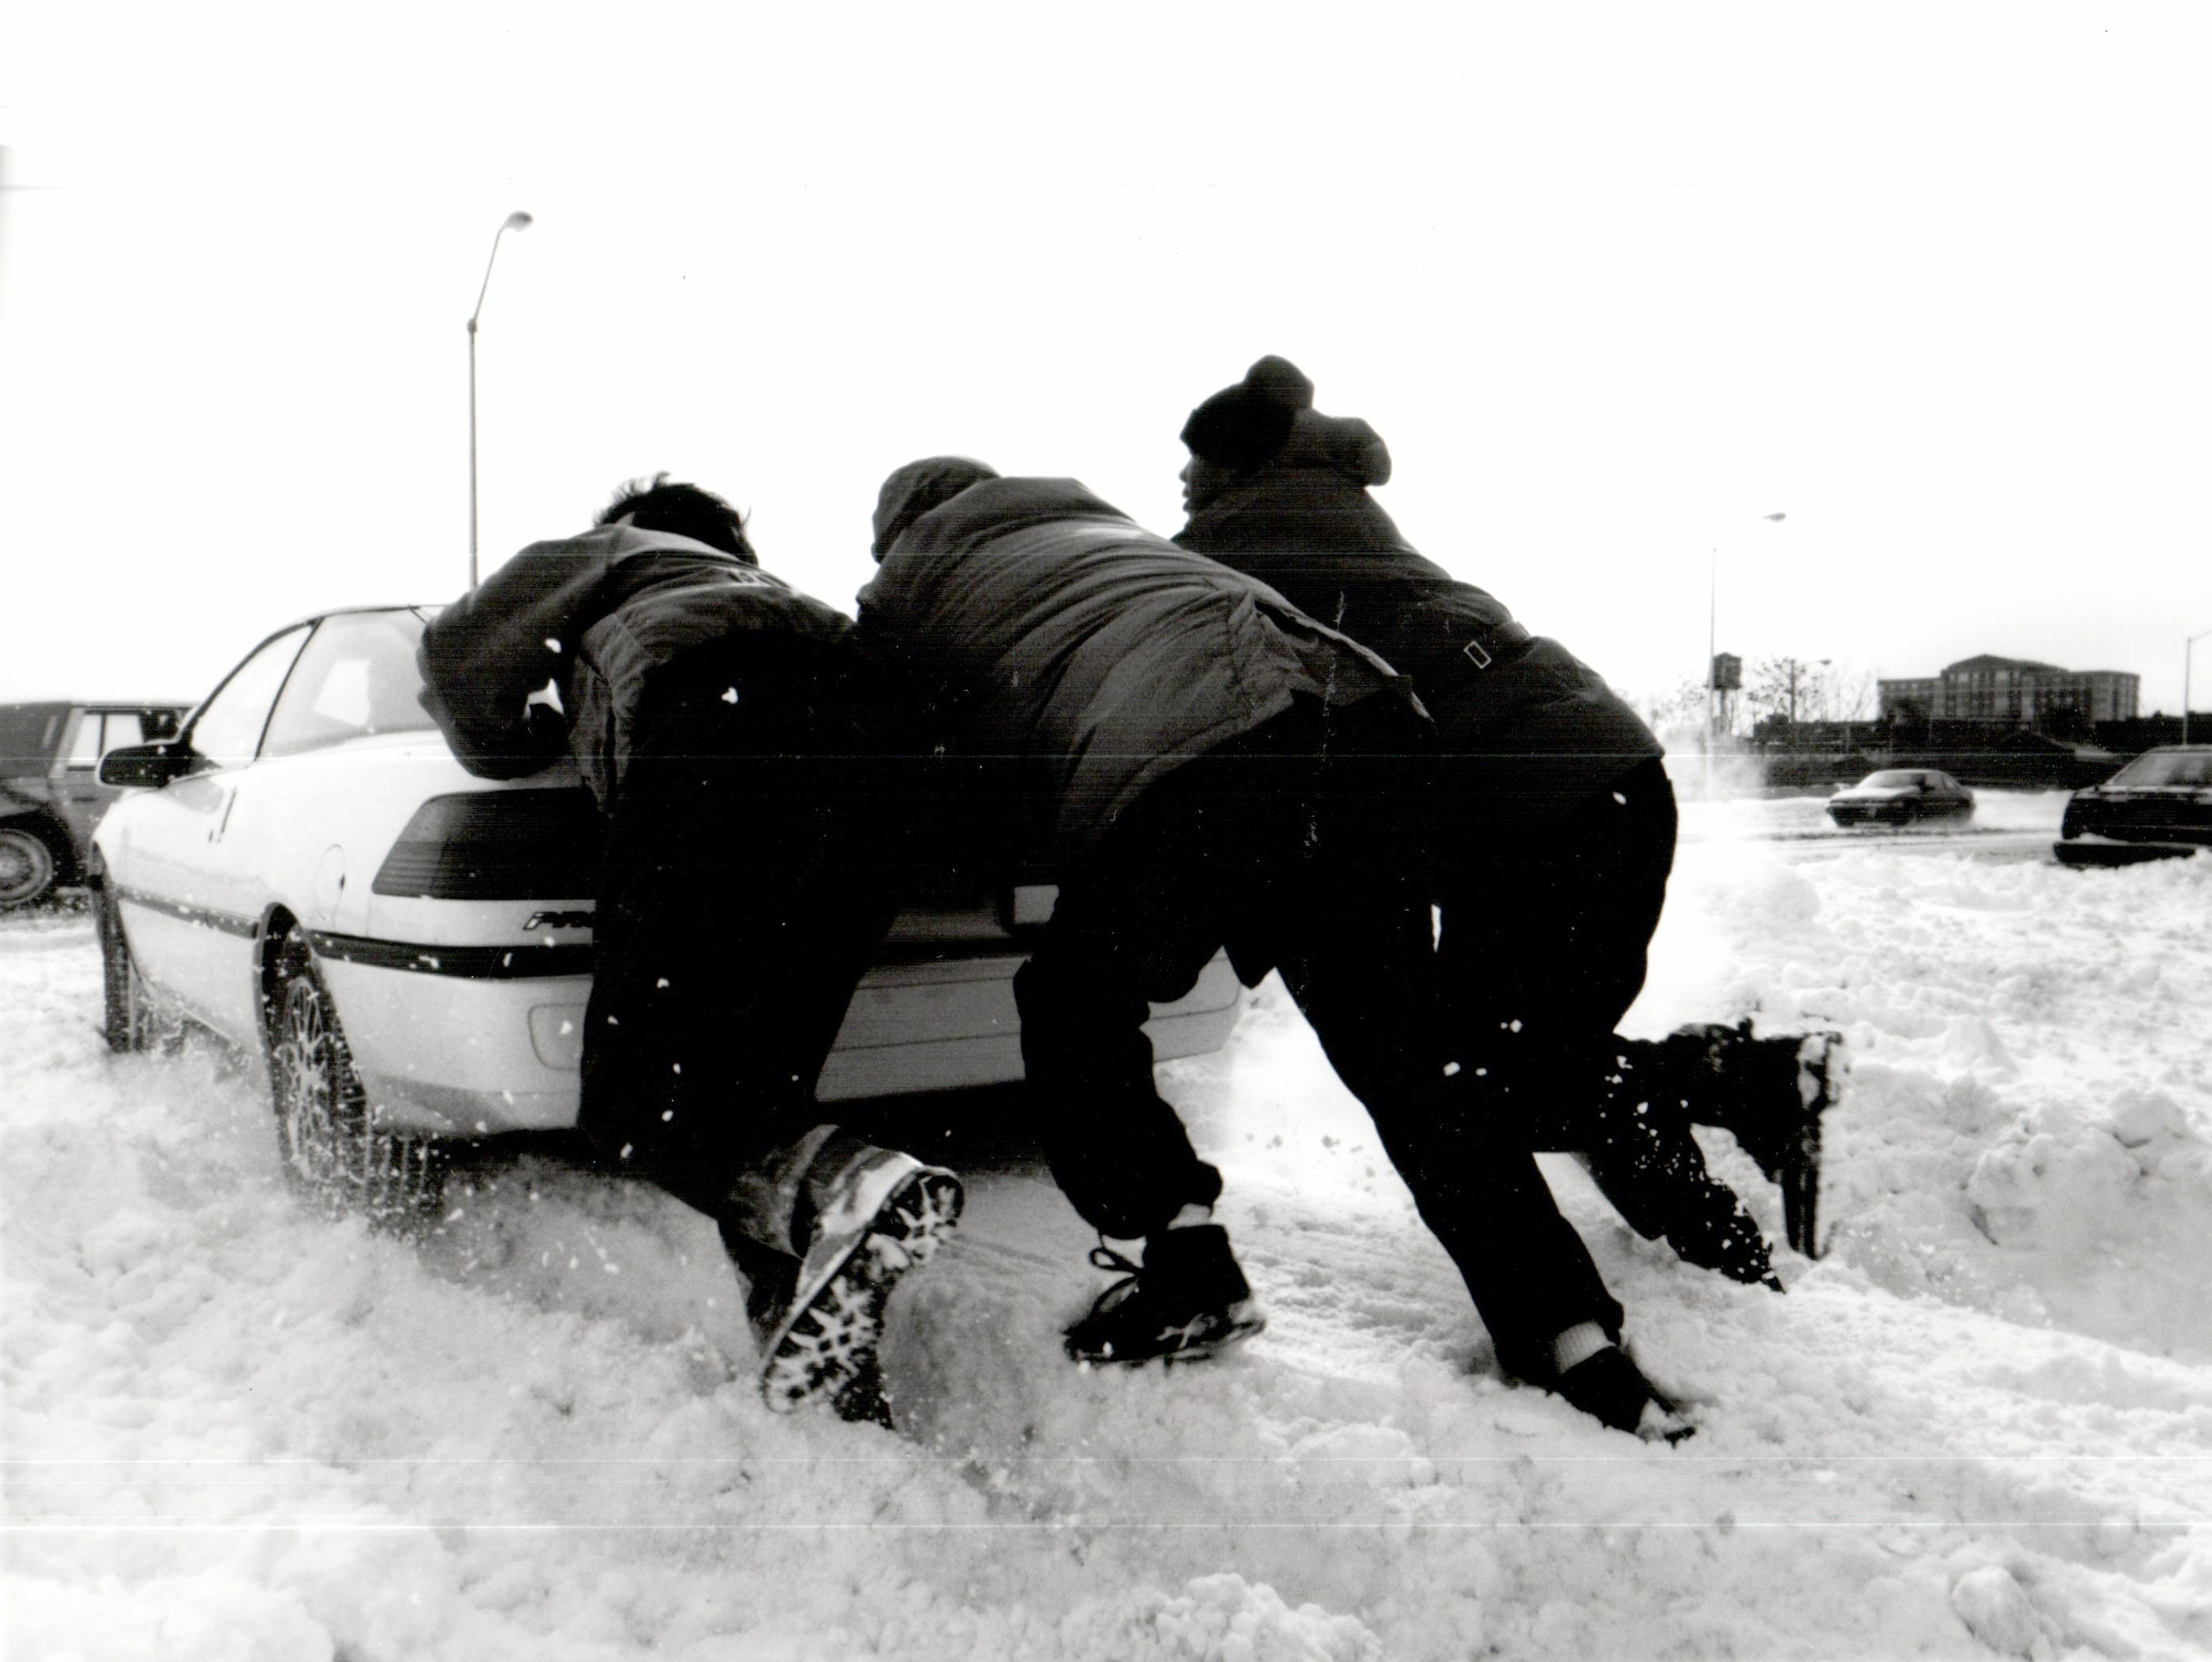 Thomas Byrnes, Detroit along with Malik Salaam and another man who preferred to remain anonymous, push Dan Mancuso's car out of the snow near Jefferson avenue in Detroit in 1992.